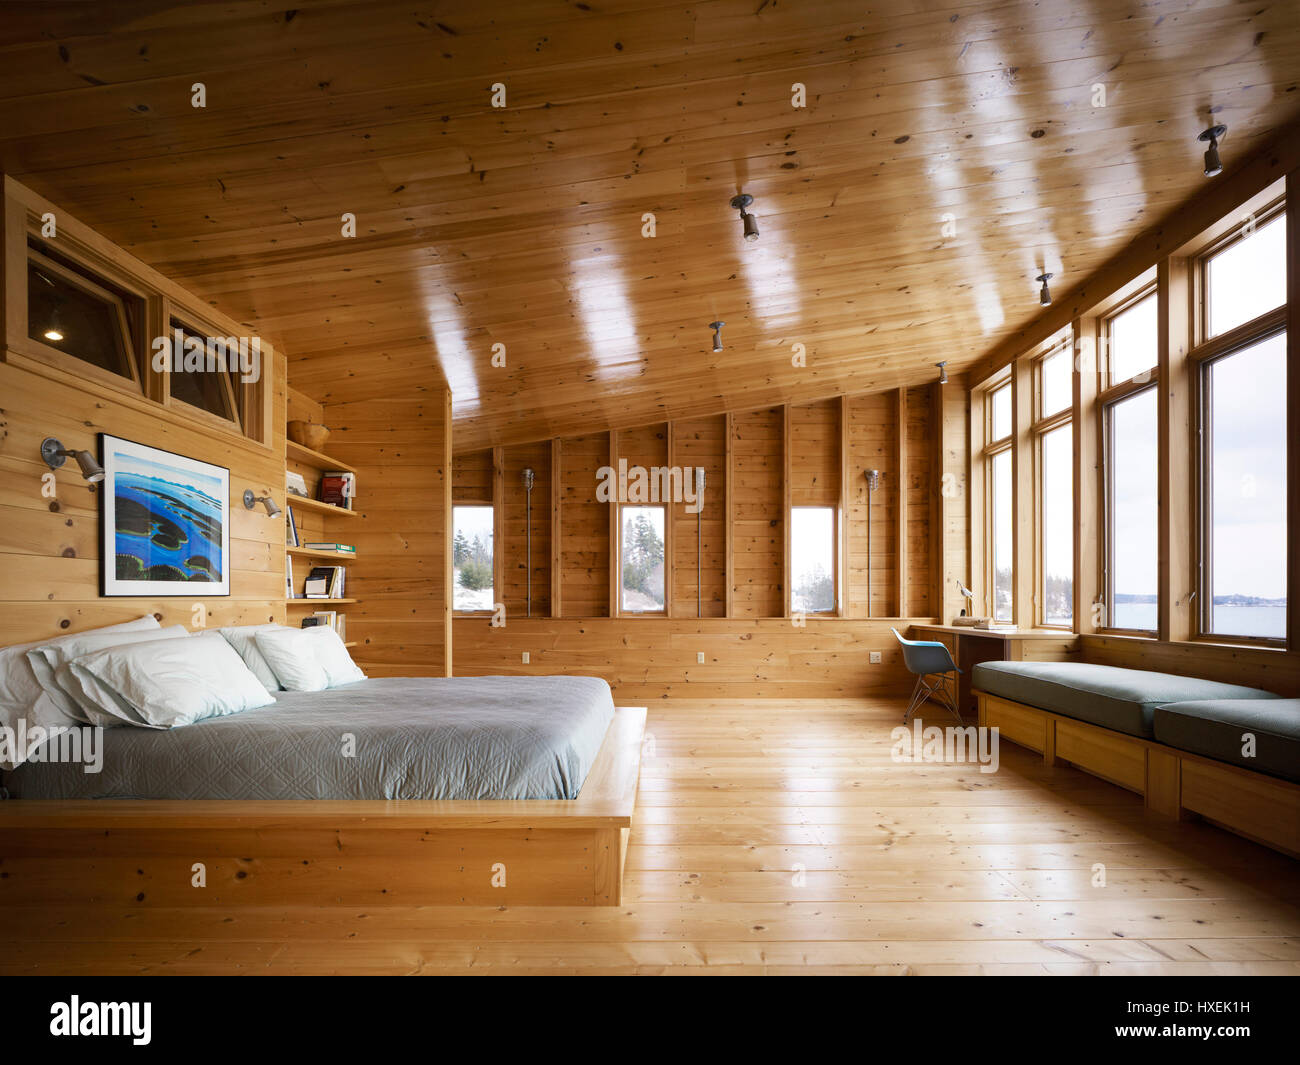 View Of The Master Bedroom Upstairs His And Hers Desks Flanking The Stock Photo Alamy